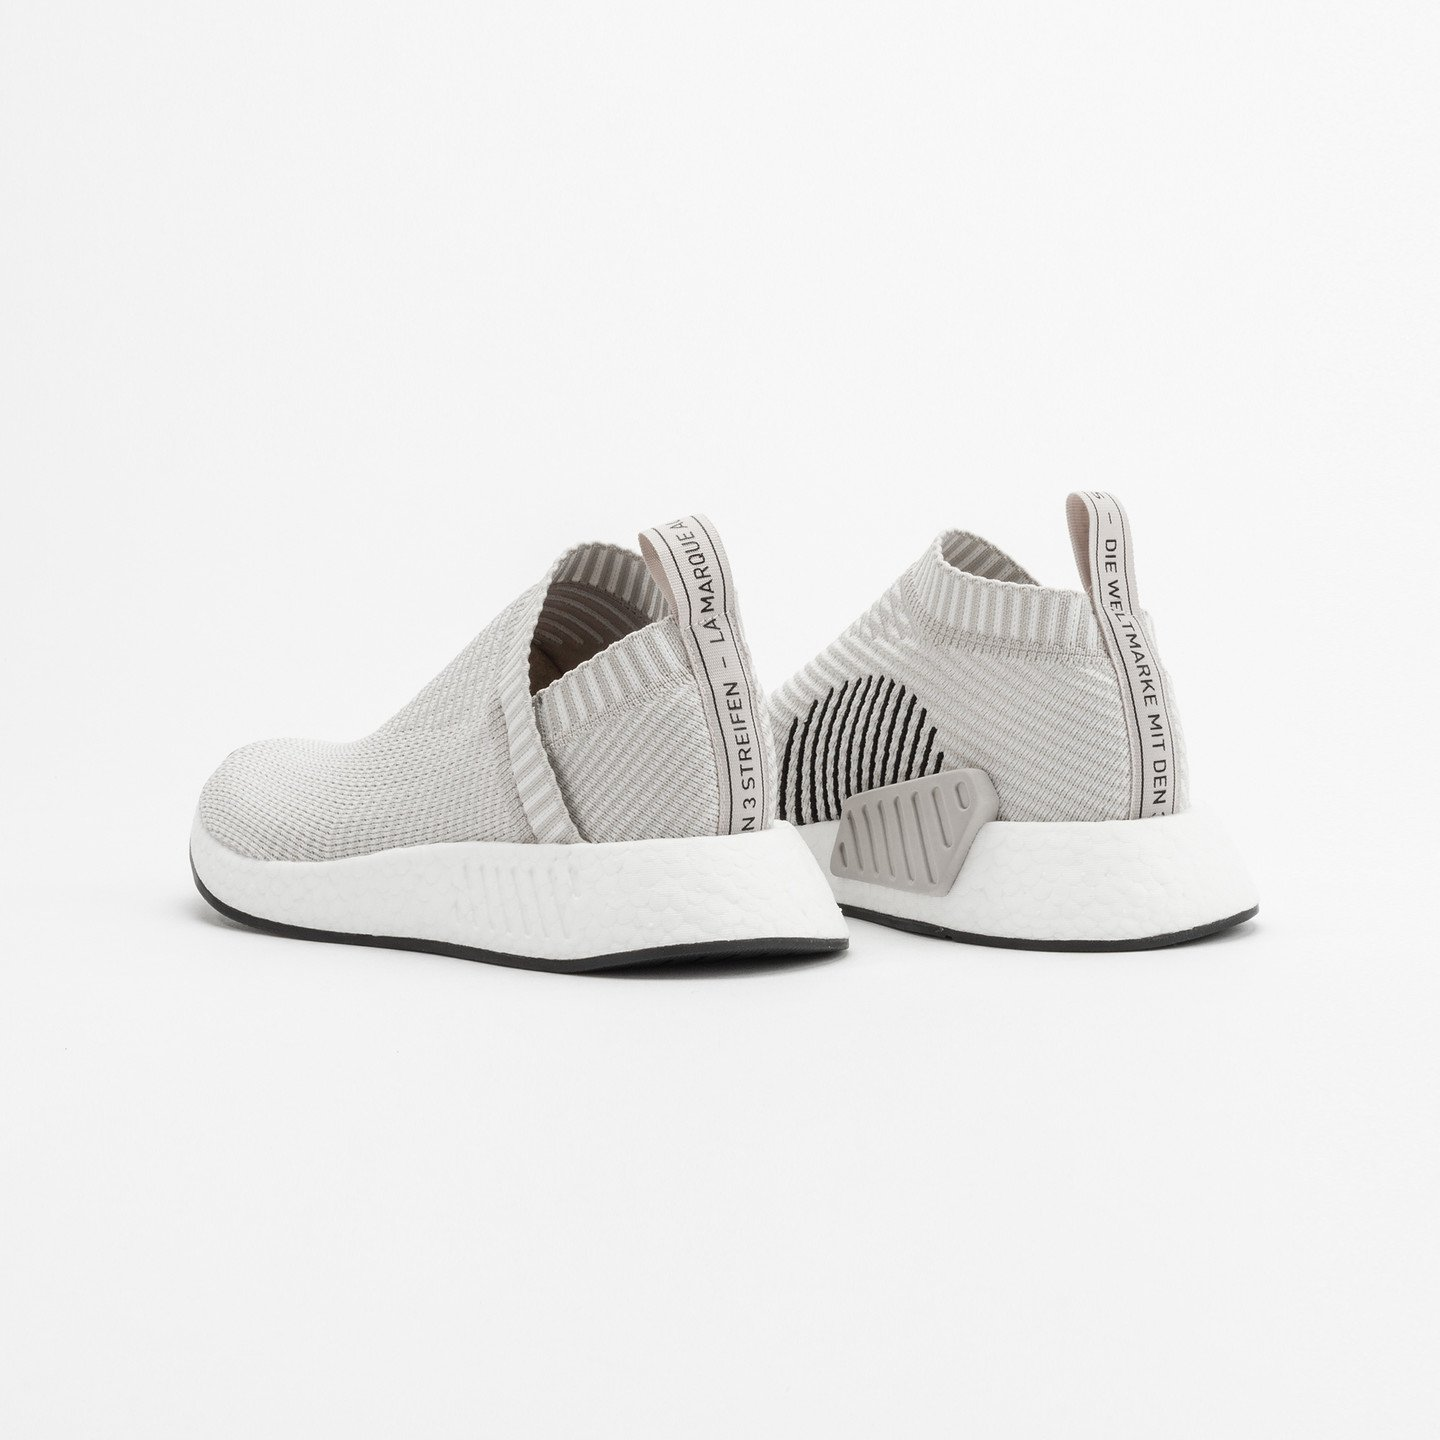 Adidas NMD CS2 PK W Grey / White / Black BA7213-40